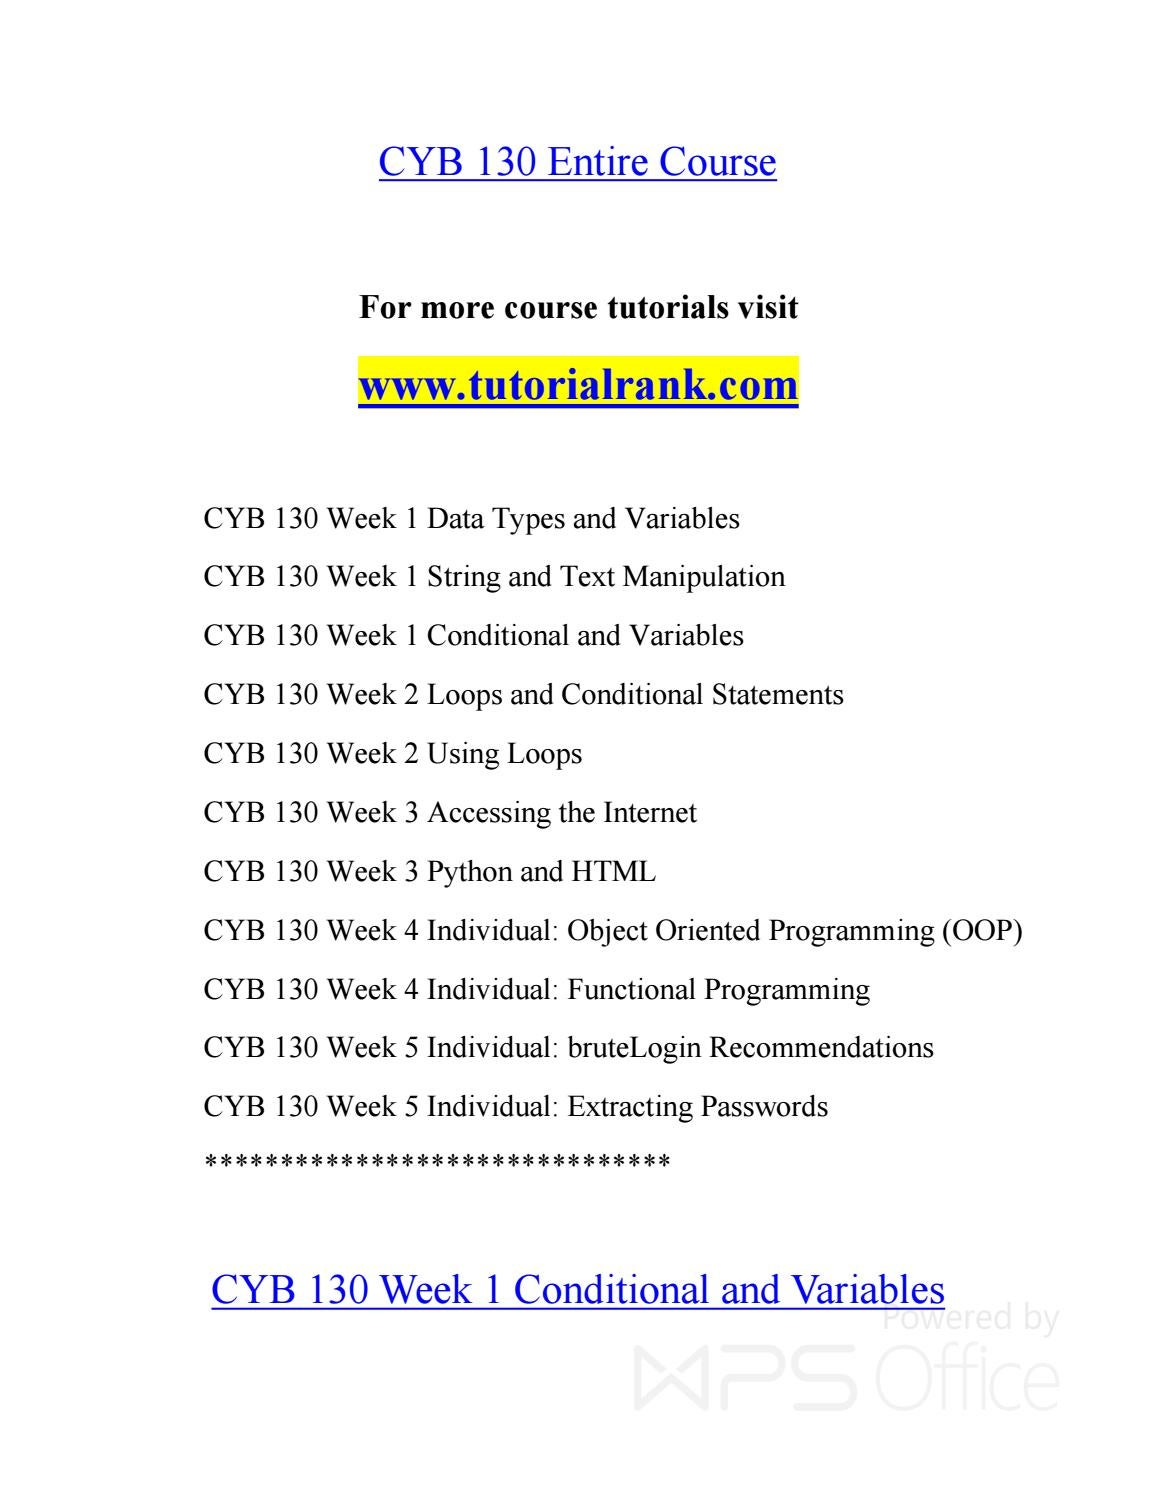 CYB 130 Teaching Effectively--tutorialrank com by PrescottLunt353